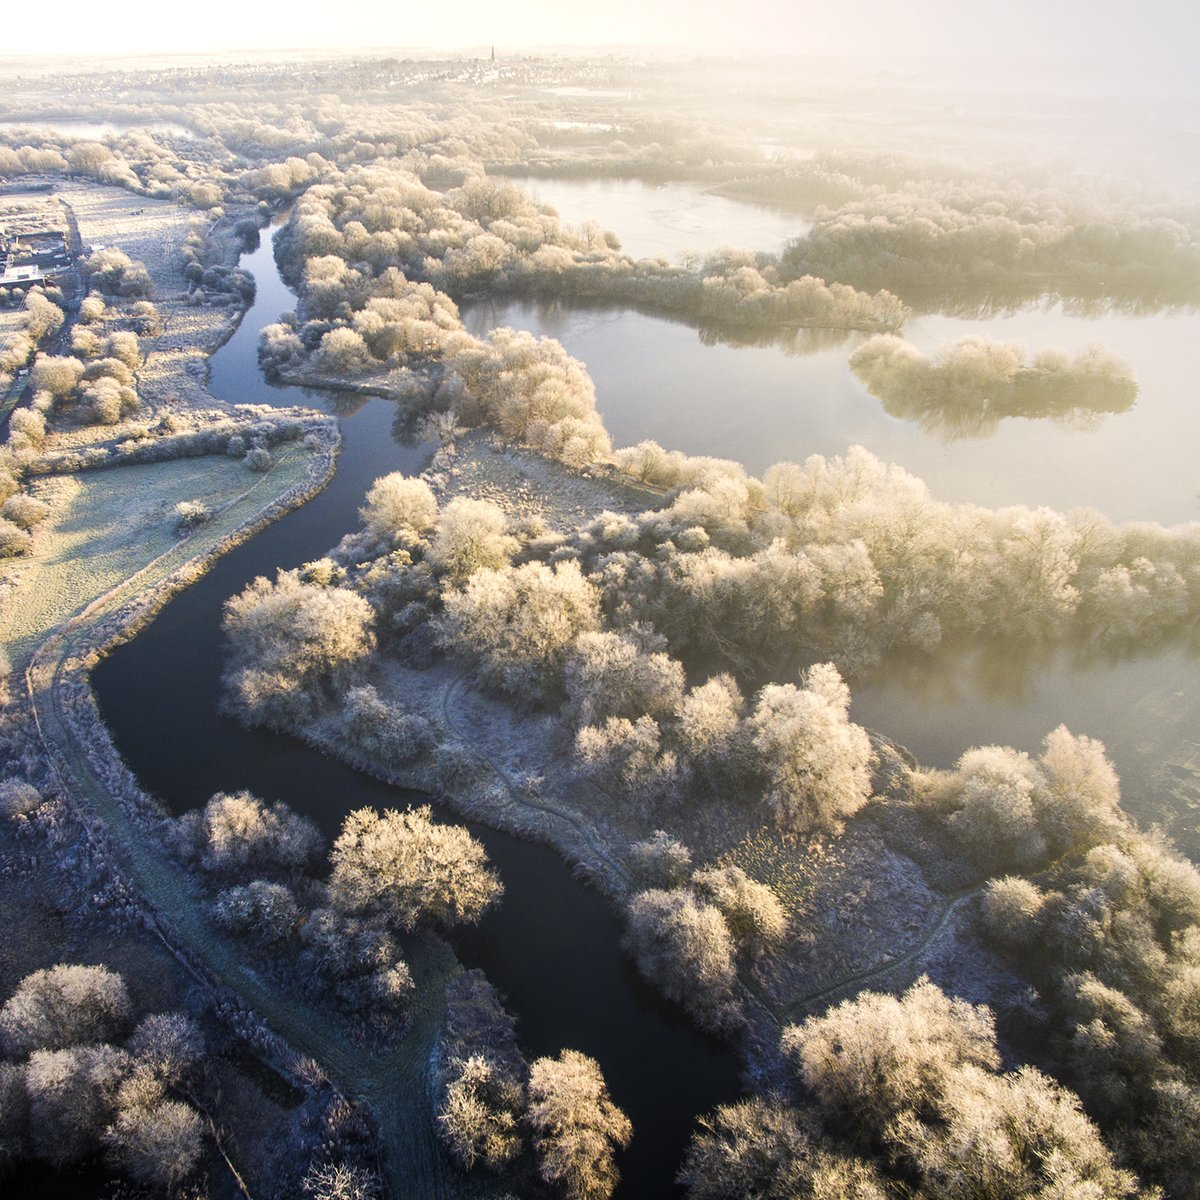 Nothing like flying on a frosty morning. Tremendous work by @martynhphoto #WexMondays https://t.co/yHre8tie2N